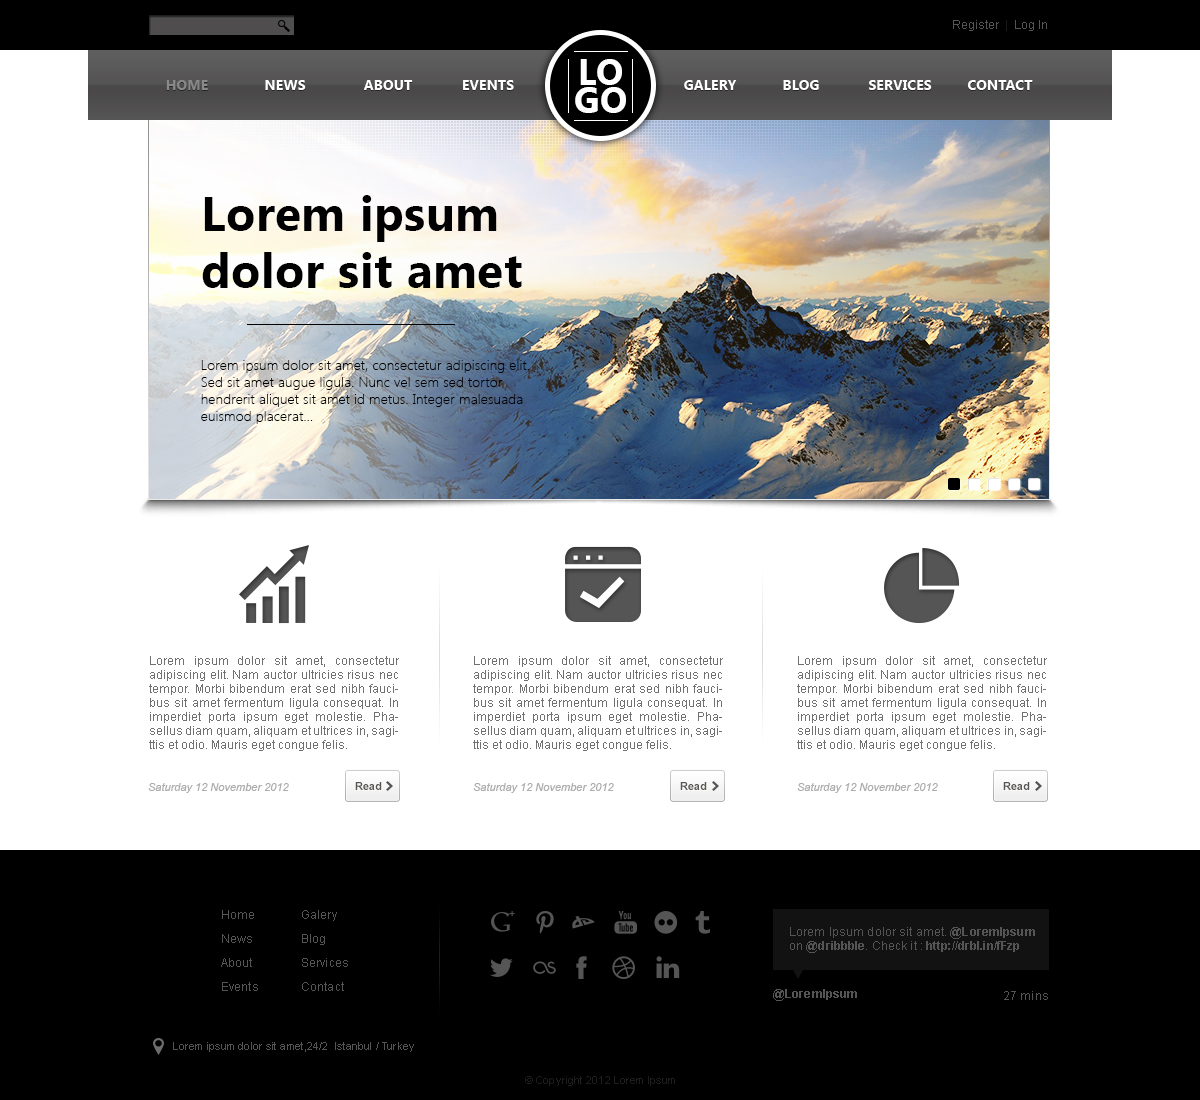 30 Free PSD Web Design Templates Inspirationfeed sk6wgSox